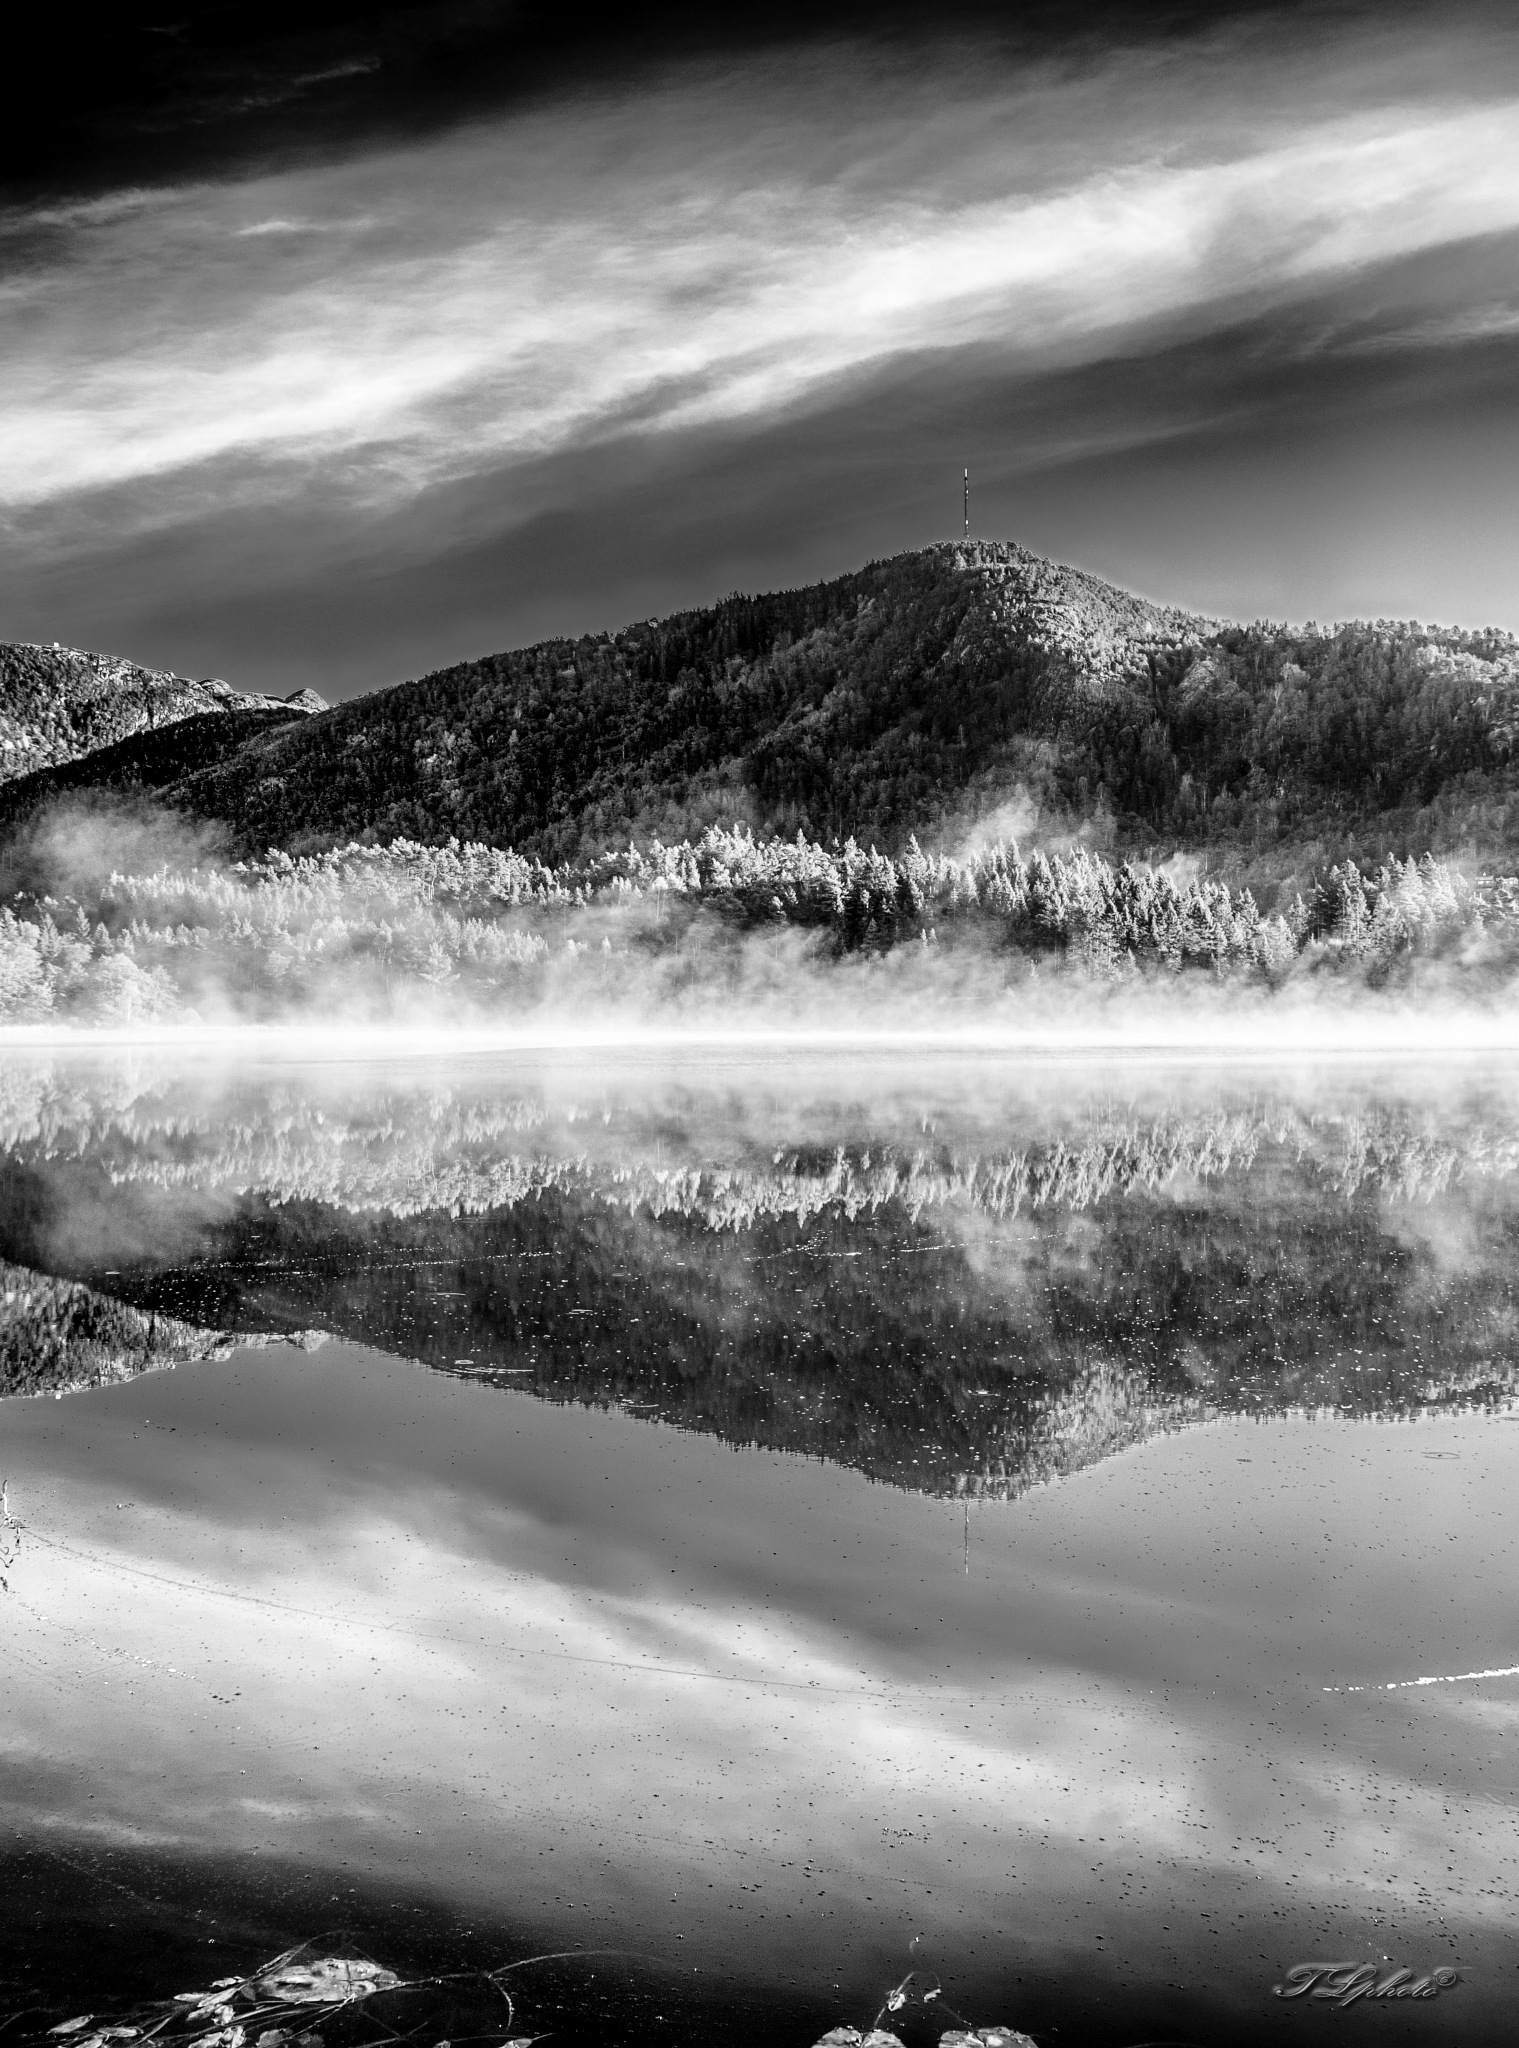 Morningreflection (bw) by Thore's photo